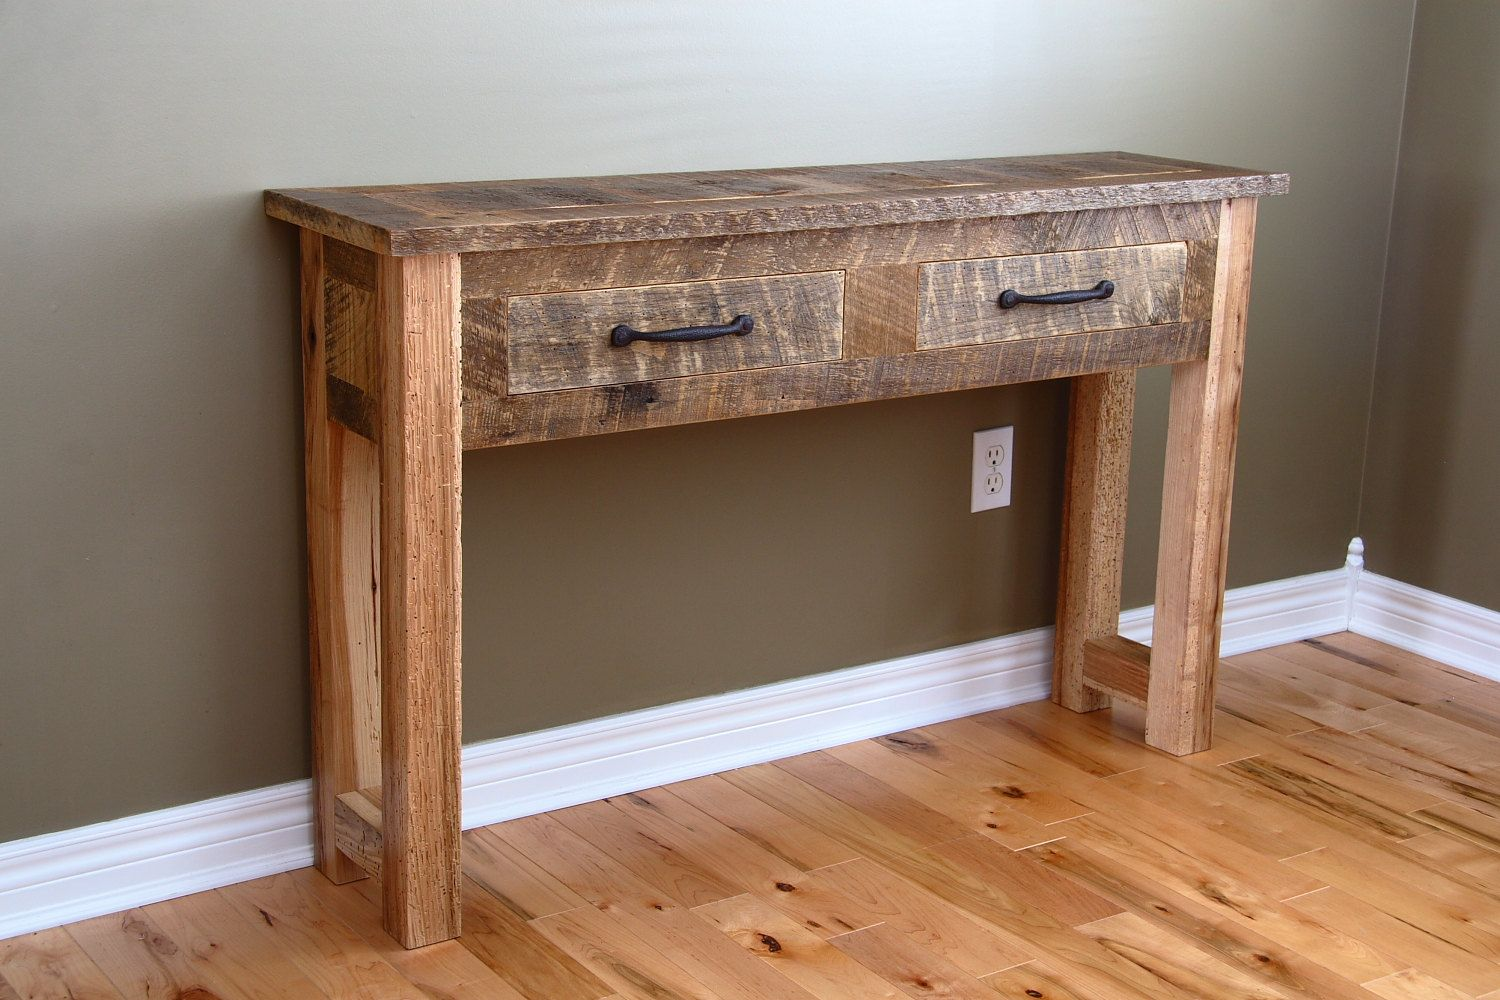 Reclaimed Wood Beam Console With Pipes Playa Del Carmen Rustic Industrial Lamps Fur Diy Entryway Table Reclaimed Wood Console Table Reclaimed Wood Projects